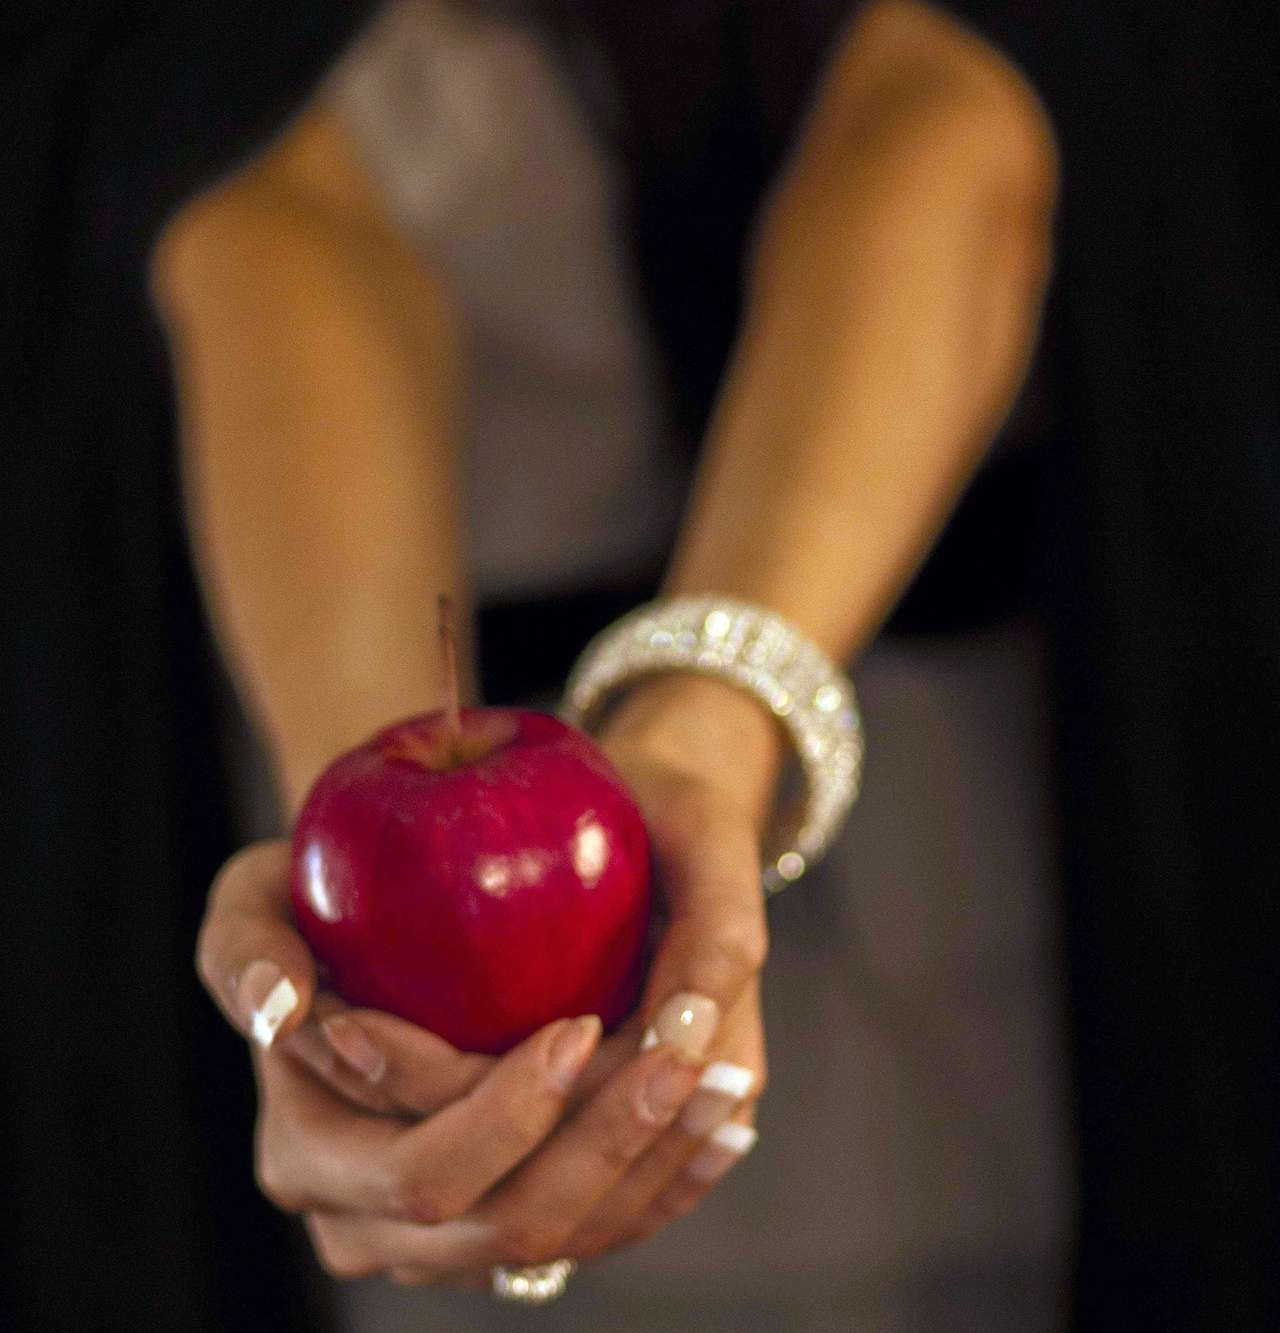 woman holds a red apple